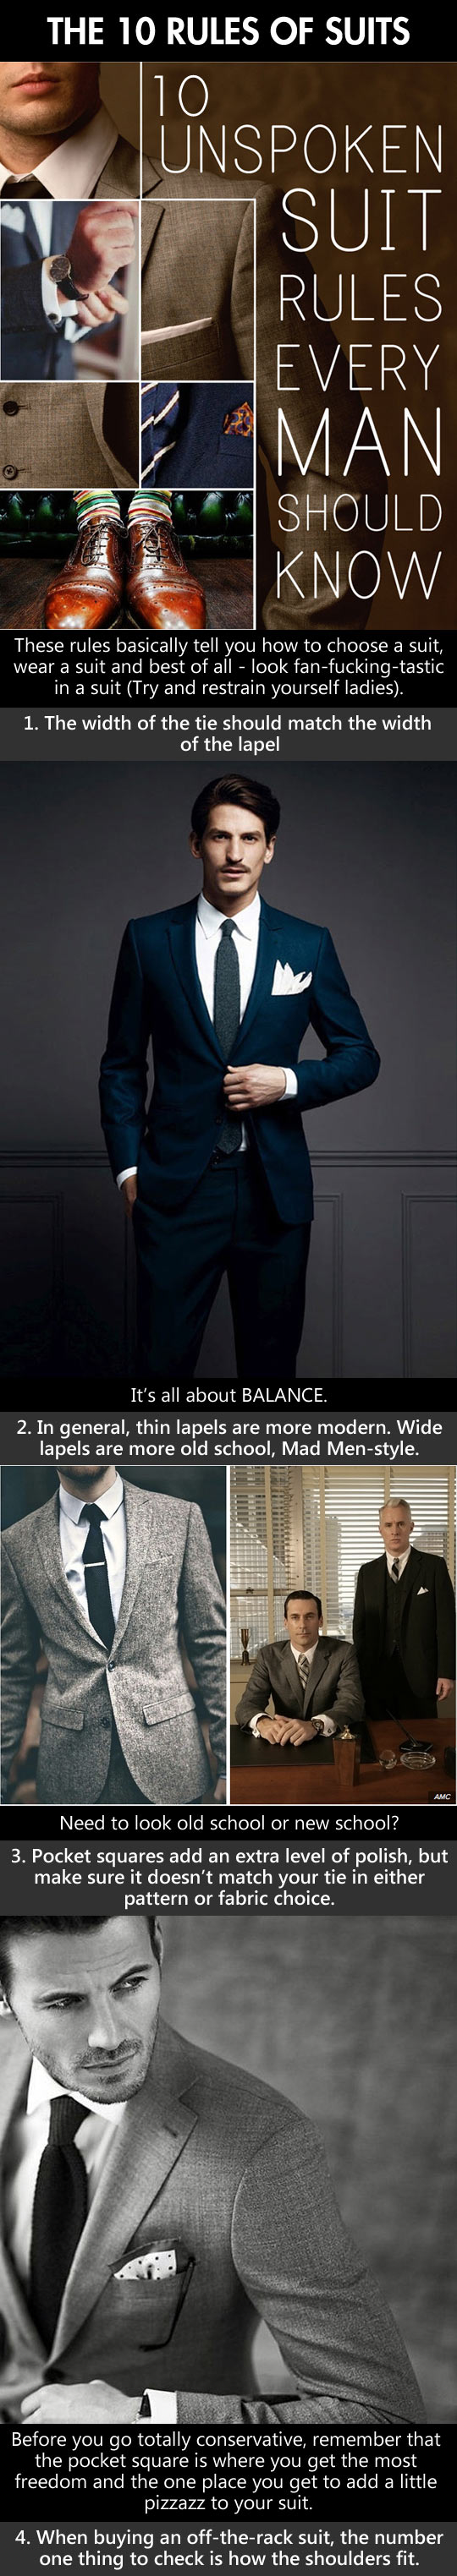 The 10 rules of suits